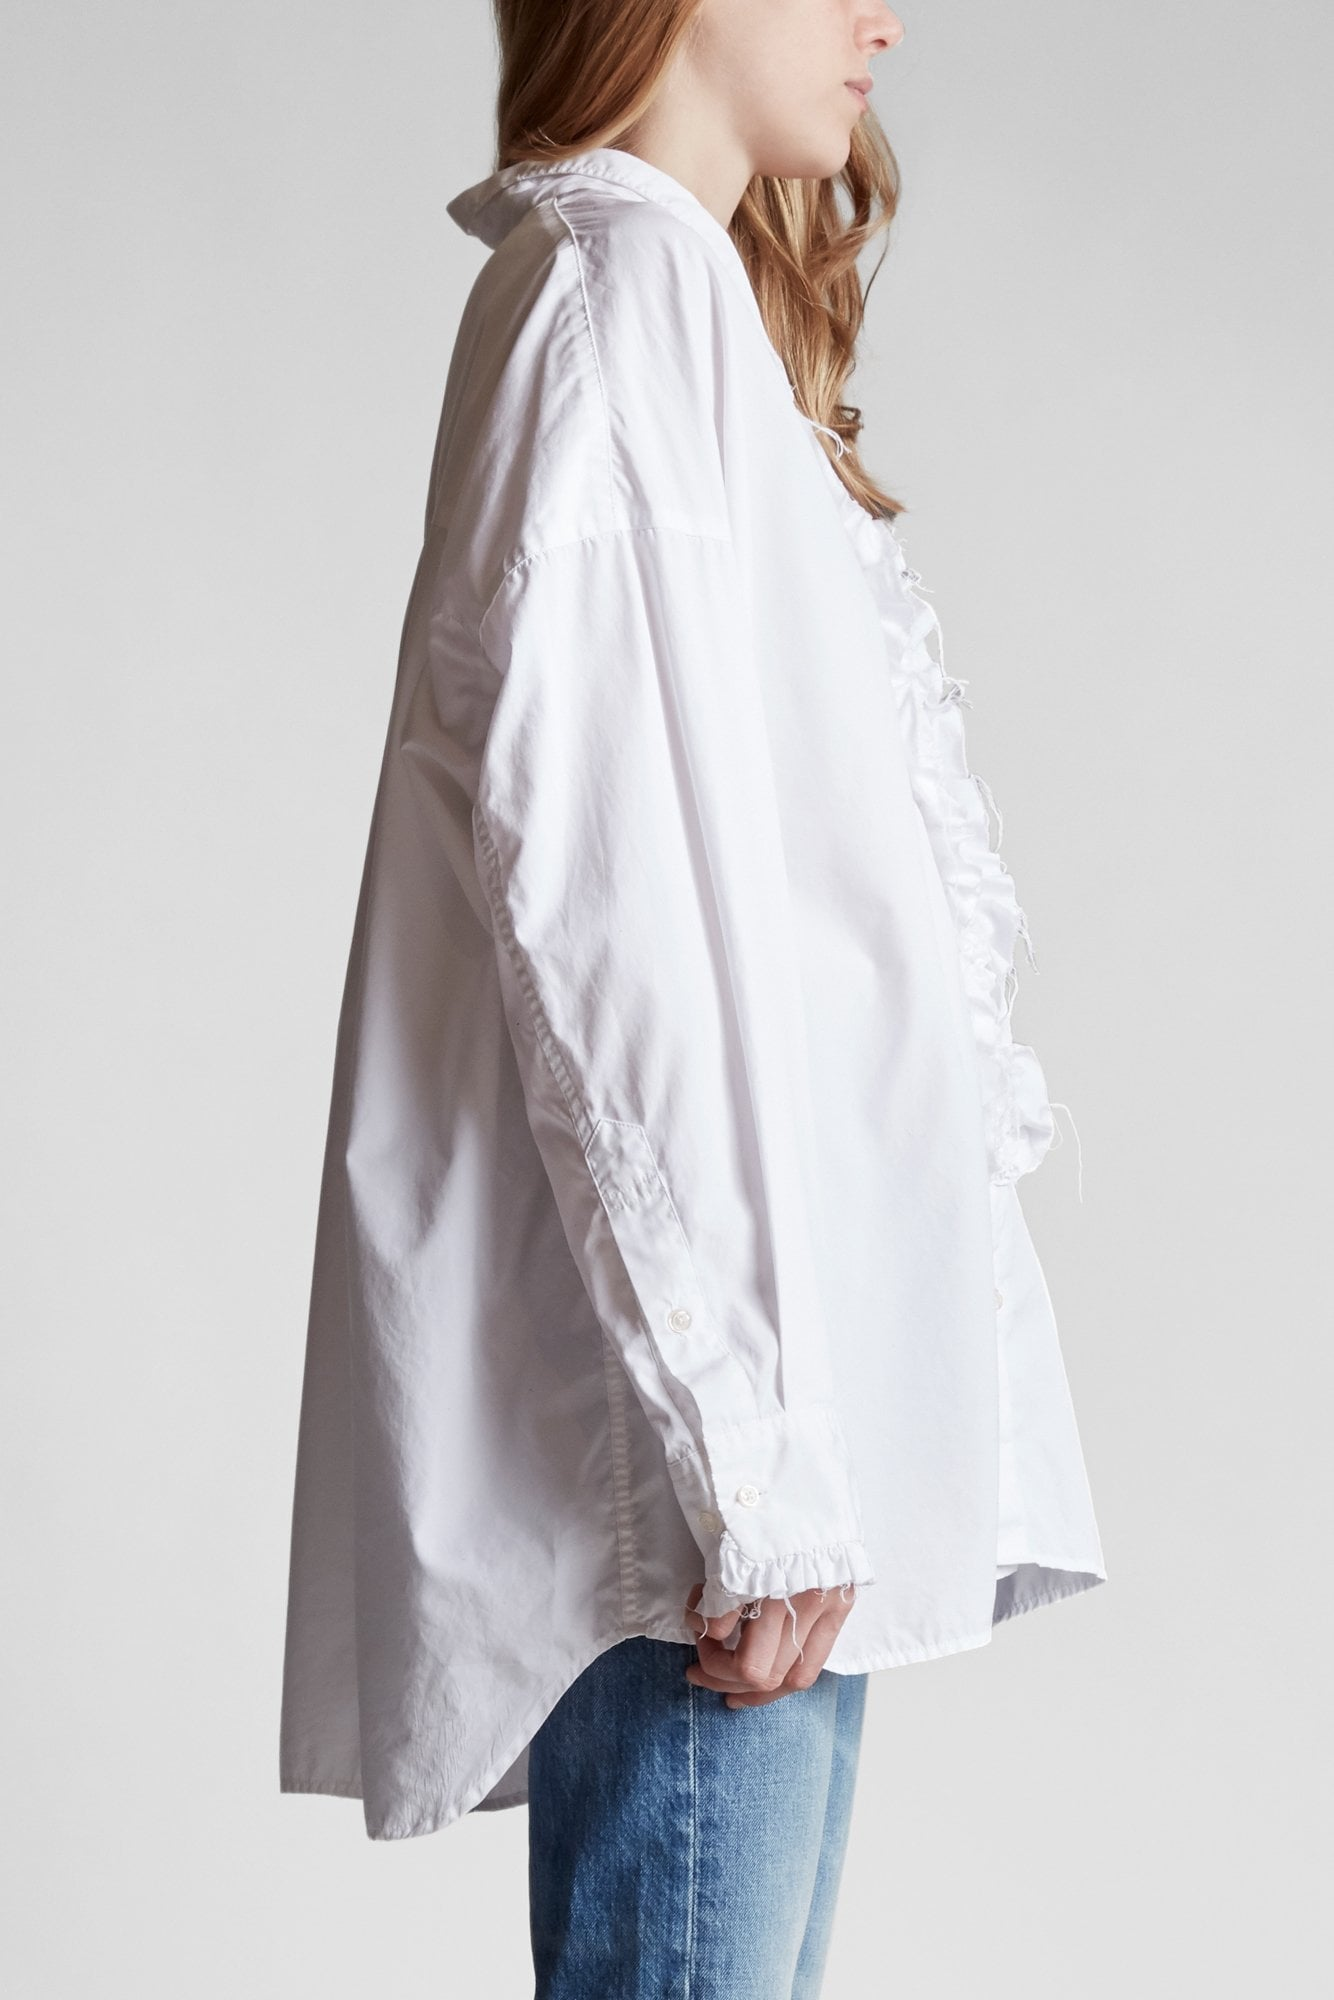 Drop Neck Tuxedo Shirt- White